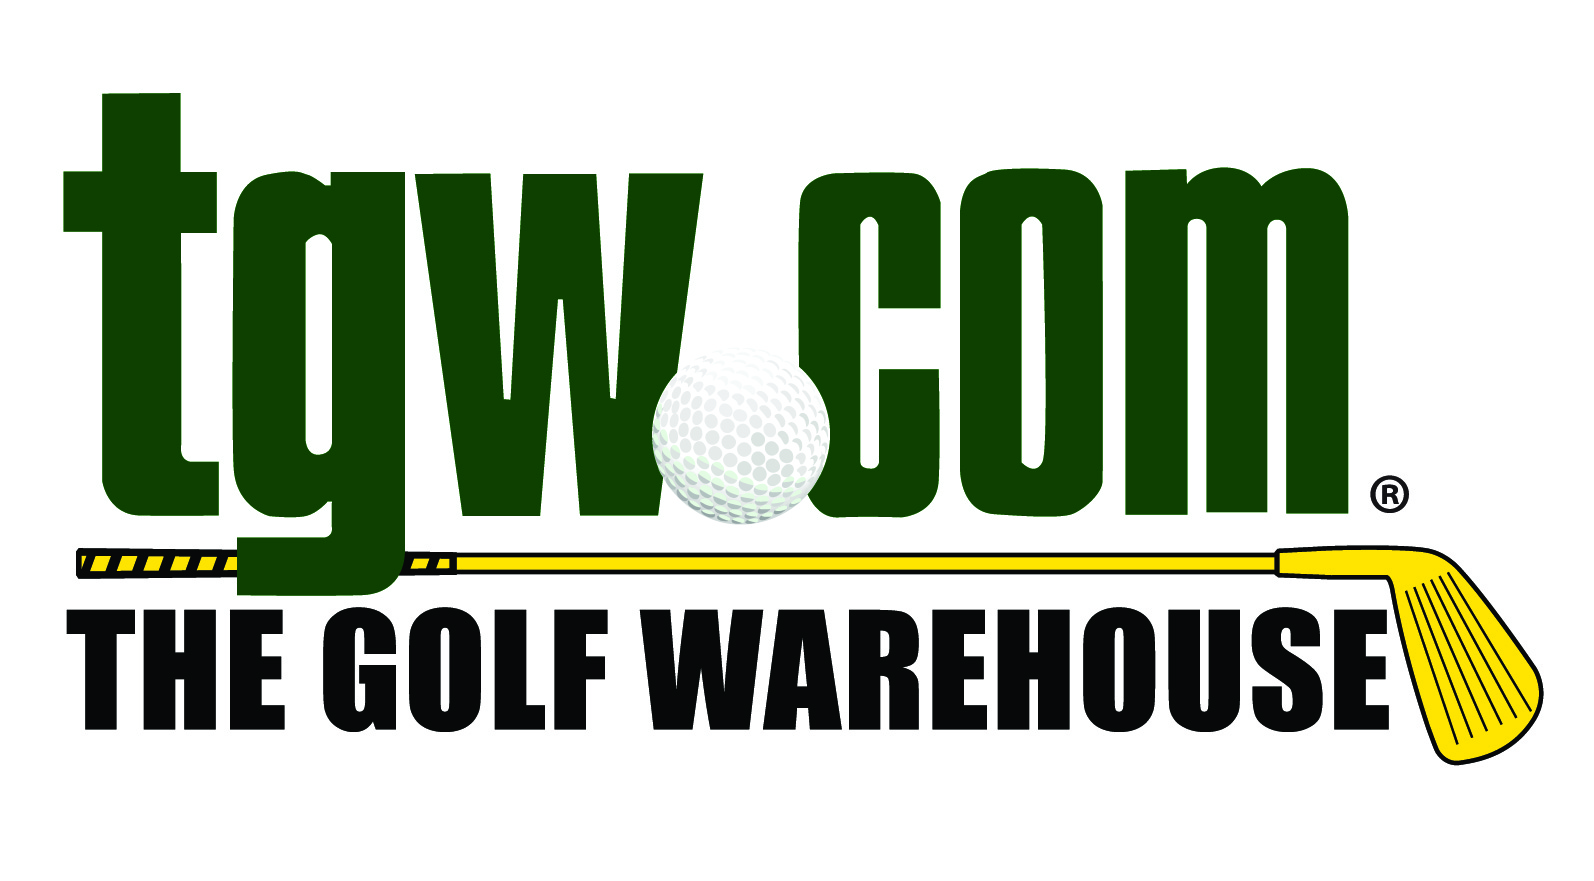 Opened in , The Golf Warehouse is a golf store located in Wichita, Kansas with approx. 9, square feet of retail space dedicated to golf clubs, golf clothing or other golf equipment essential for avid Kansas golfers. The Golf Warehouse's Wichita golf shop is managed by Franz W. Weiglein, President, who can be reached on ()